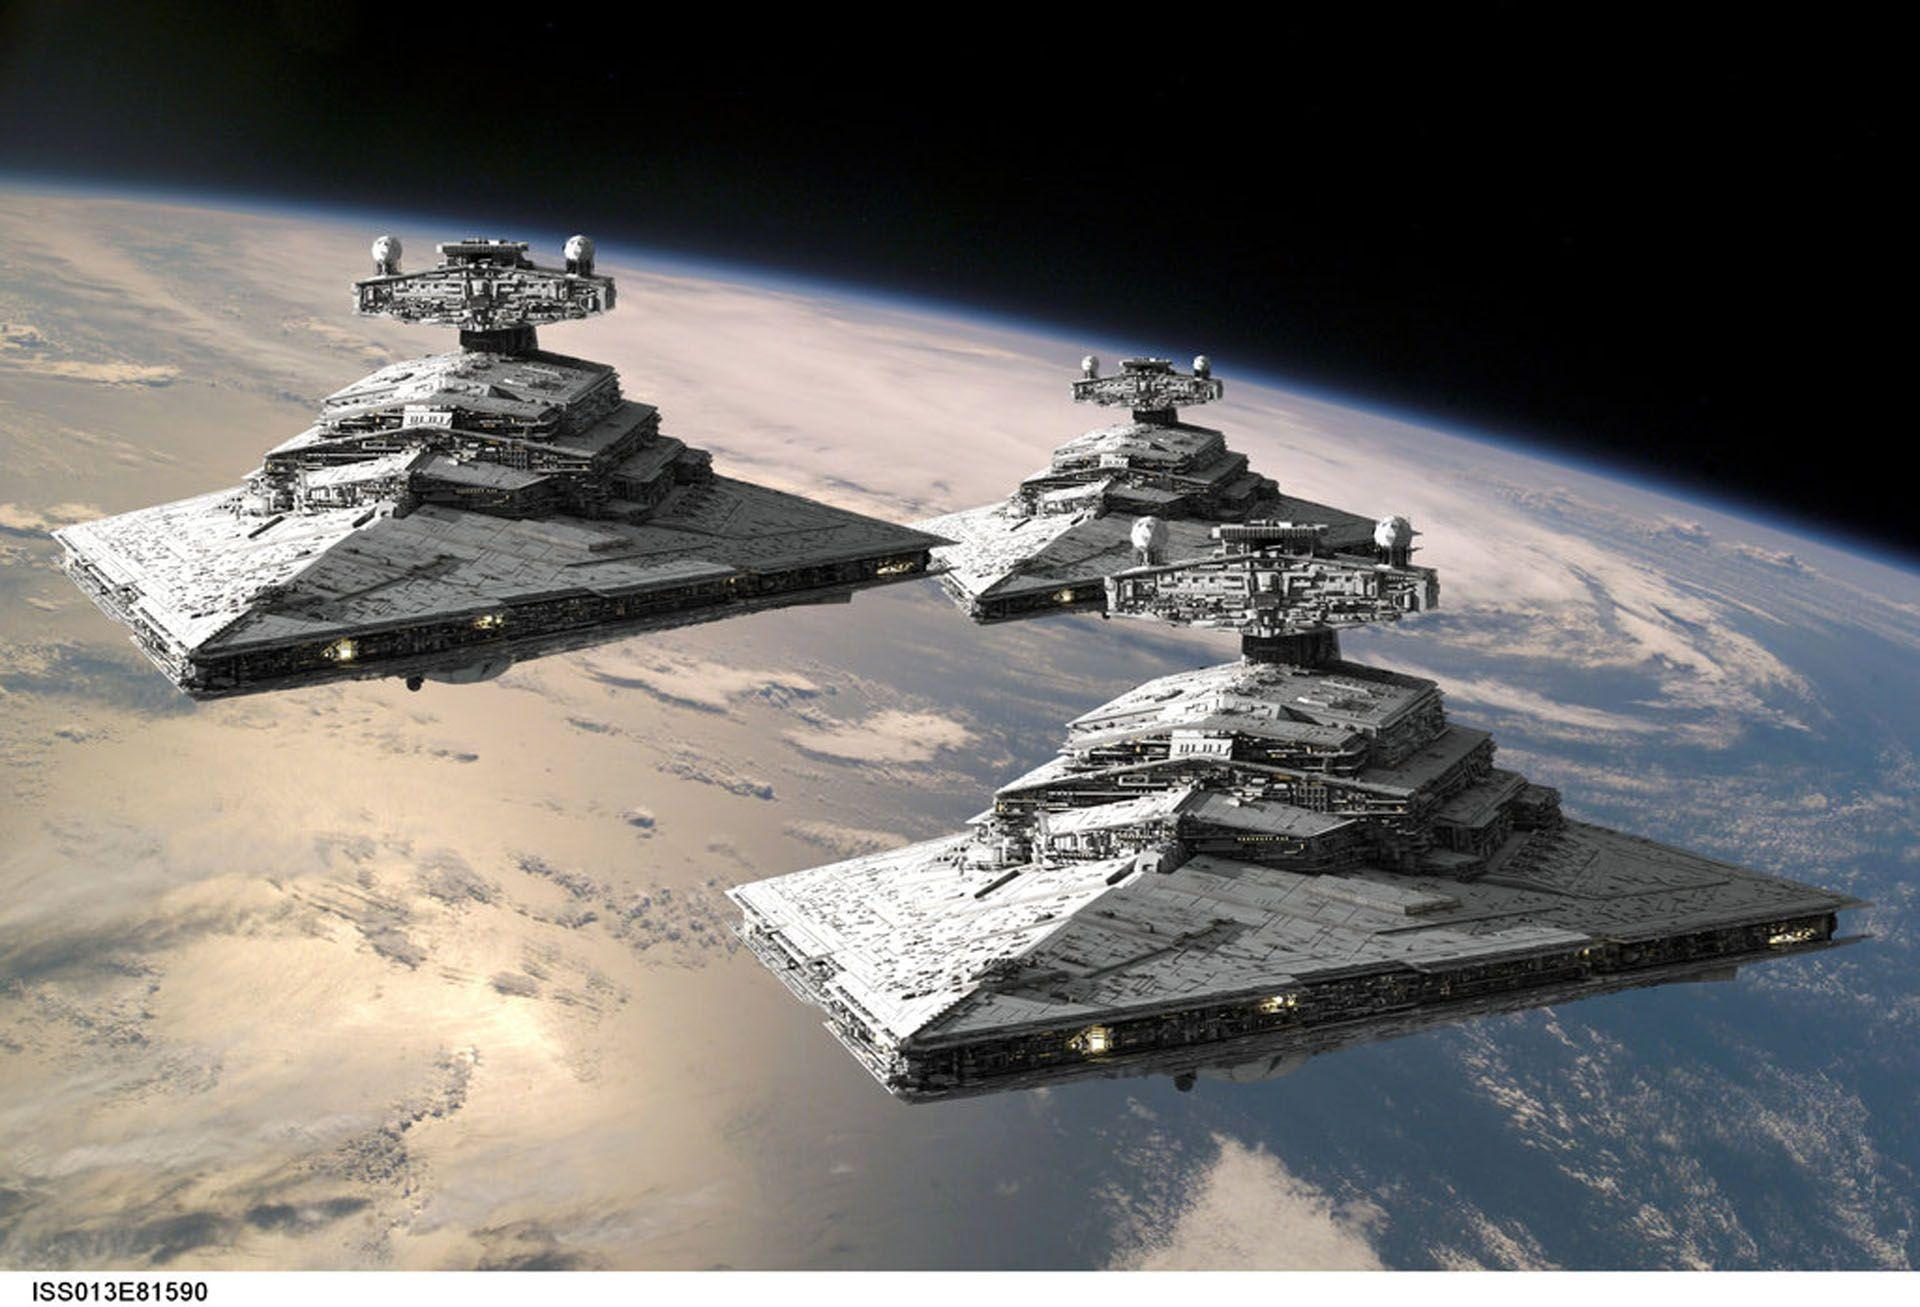 Related Pictures Wallpapers Star Wars Spaceship Imperial Star